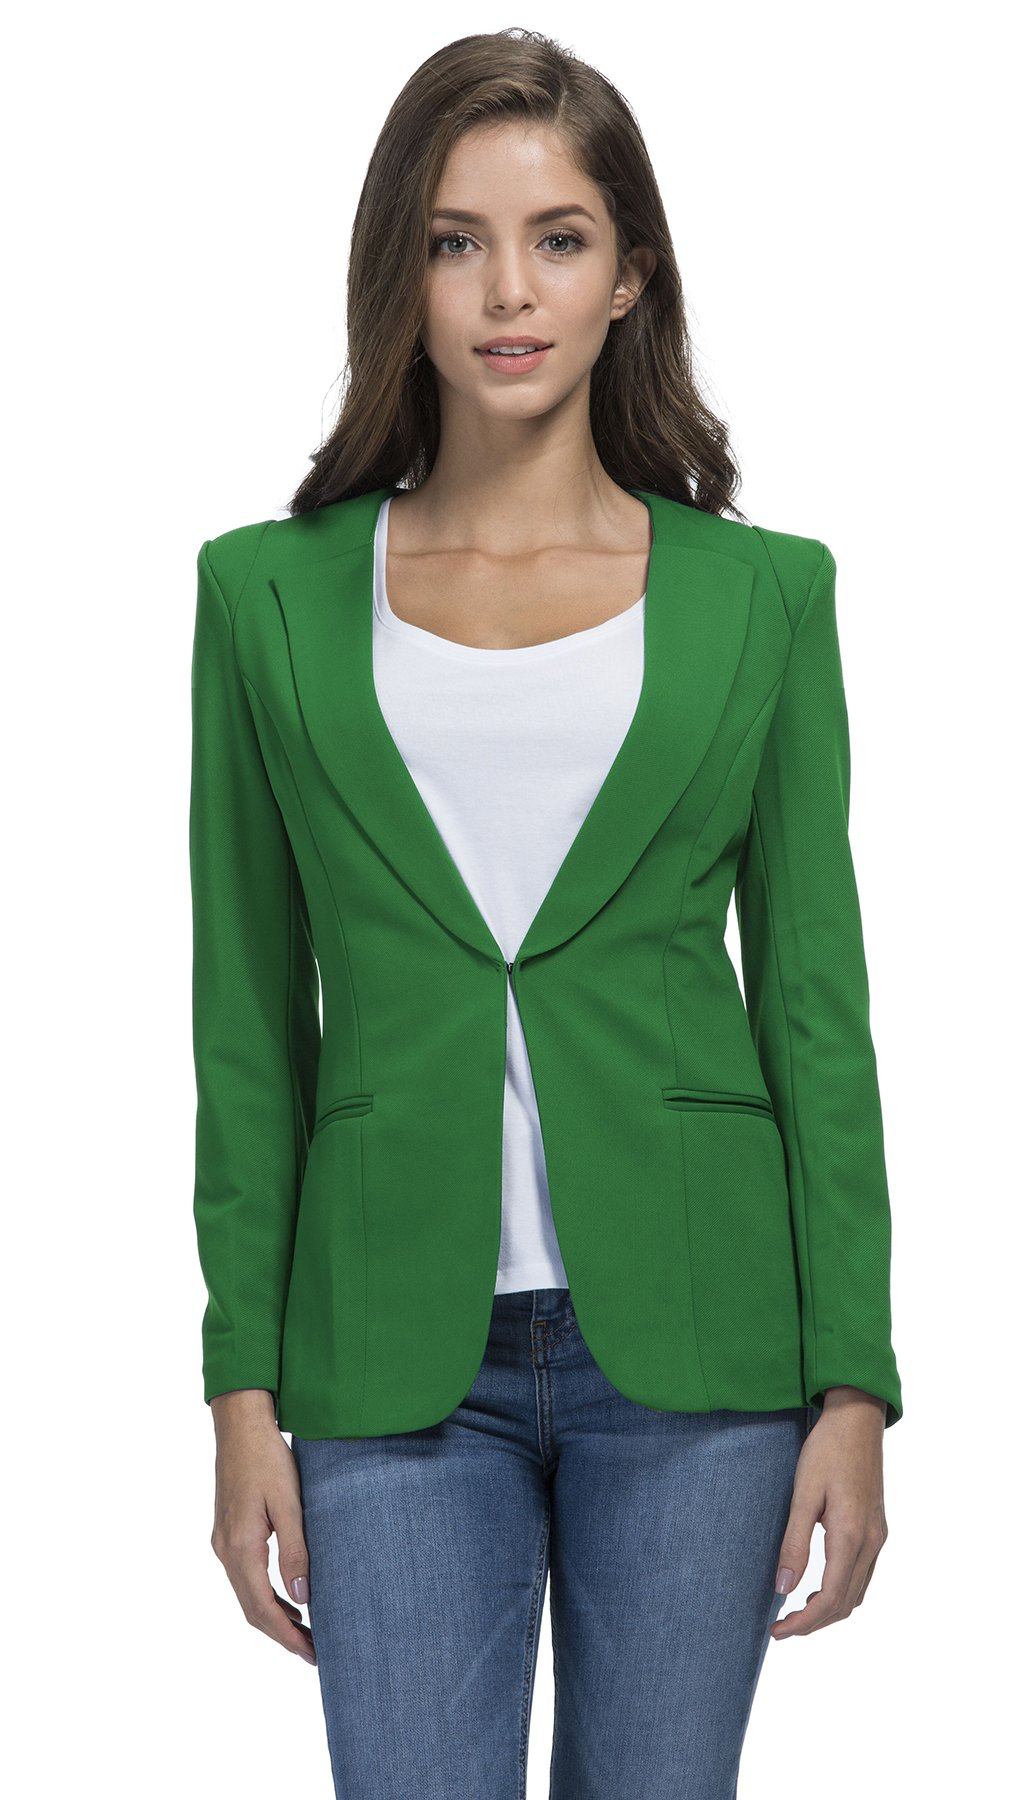 Blazers Back To Search Resultswomen's Clothing Blue Pink Ladies Blazer Jackets Work Wear 2019 Fashion Casual Long Sleeve Blasers Lady One Button Office Suit Outwear Female Refreshing And Beneficial To The Eyes